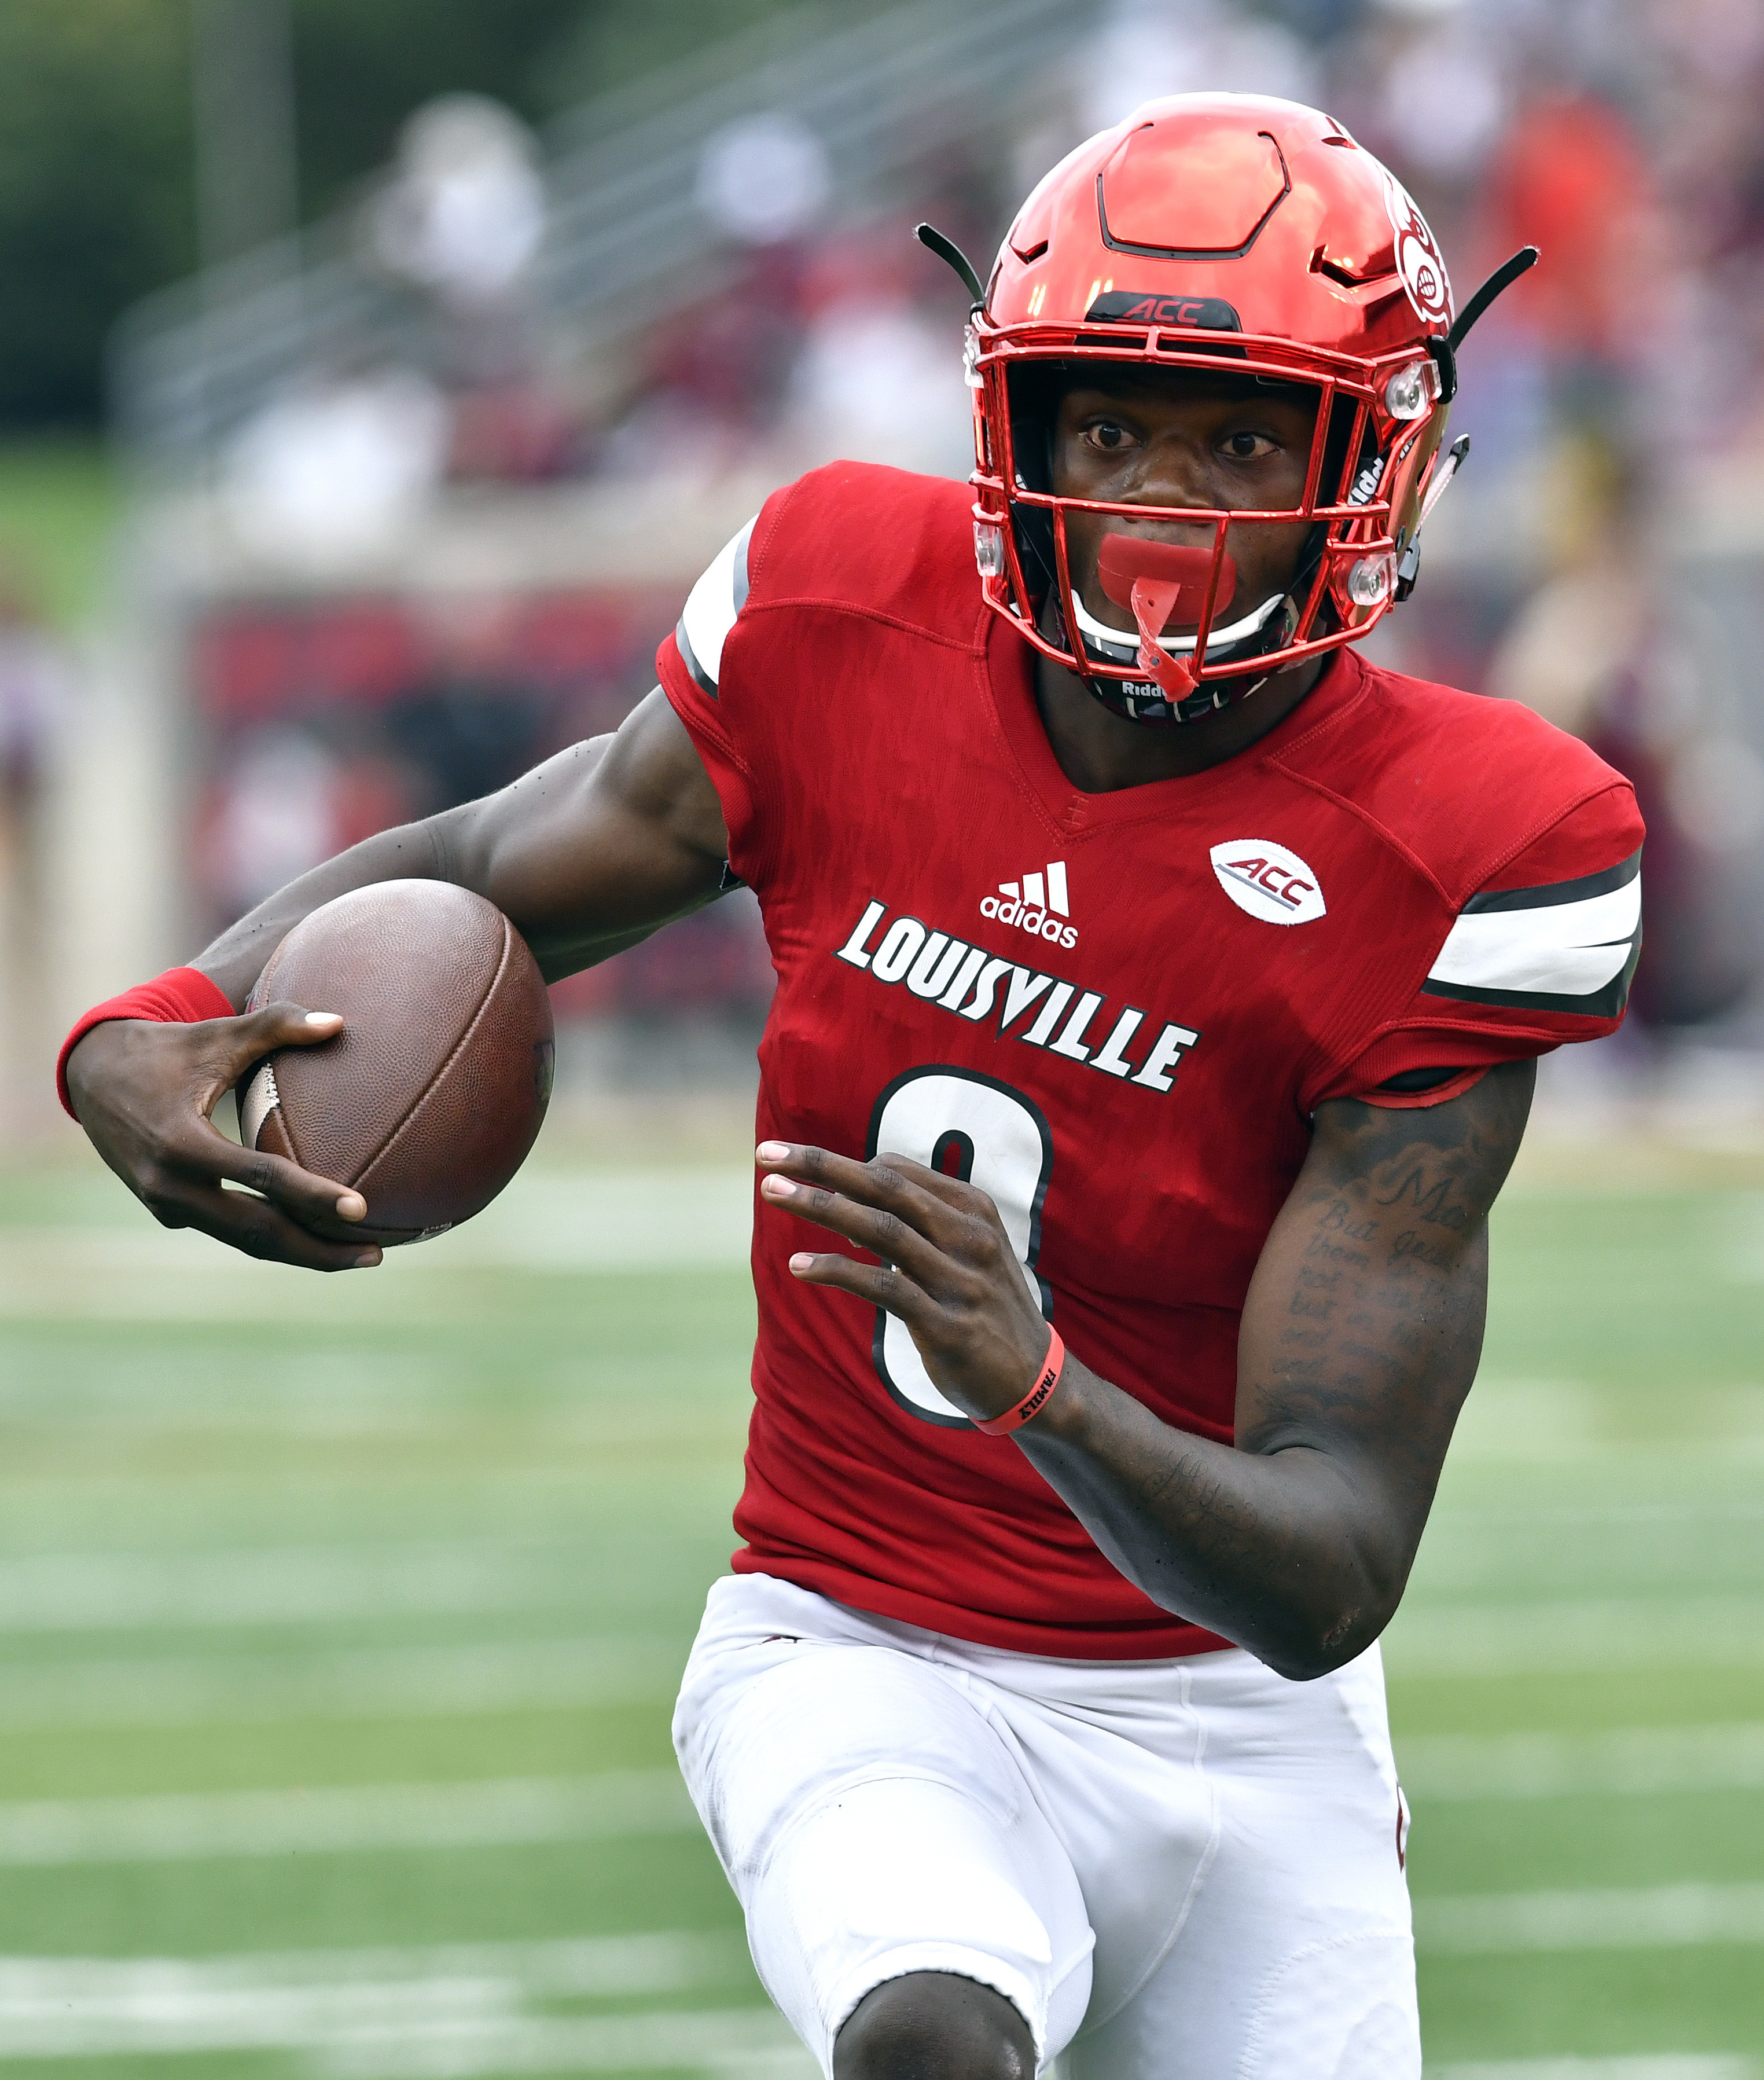 FILE - In this Sept. 17, 2016, file photo, Louisville's Lamar Jackson runs through an opening in the Florida State line during the first quarter of an NCAA college football game, in Louisville Ky. Lamar Jackson and No. 3 Louisville go from playing the mai